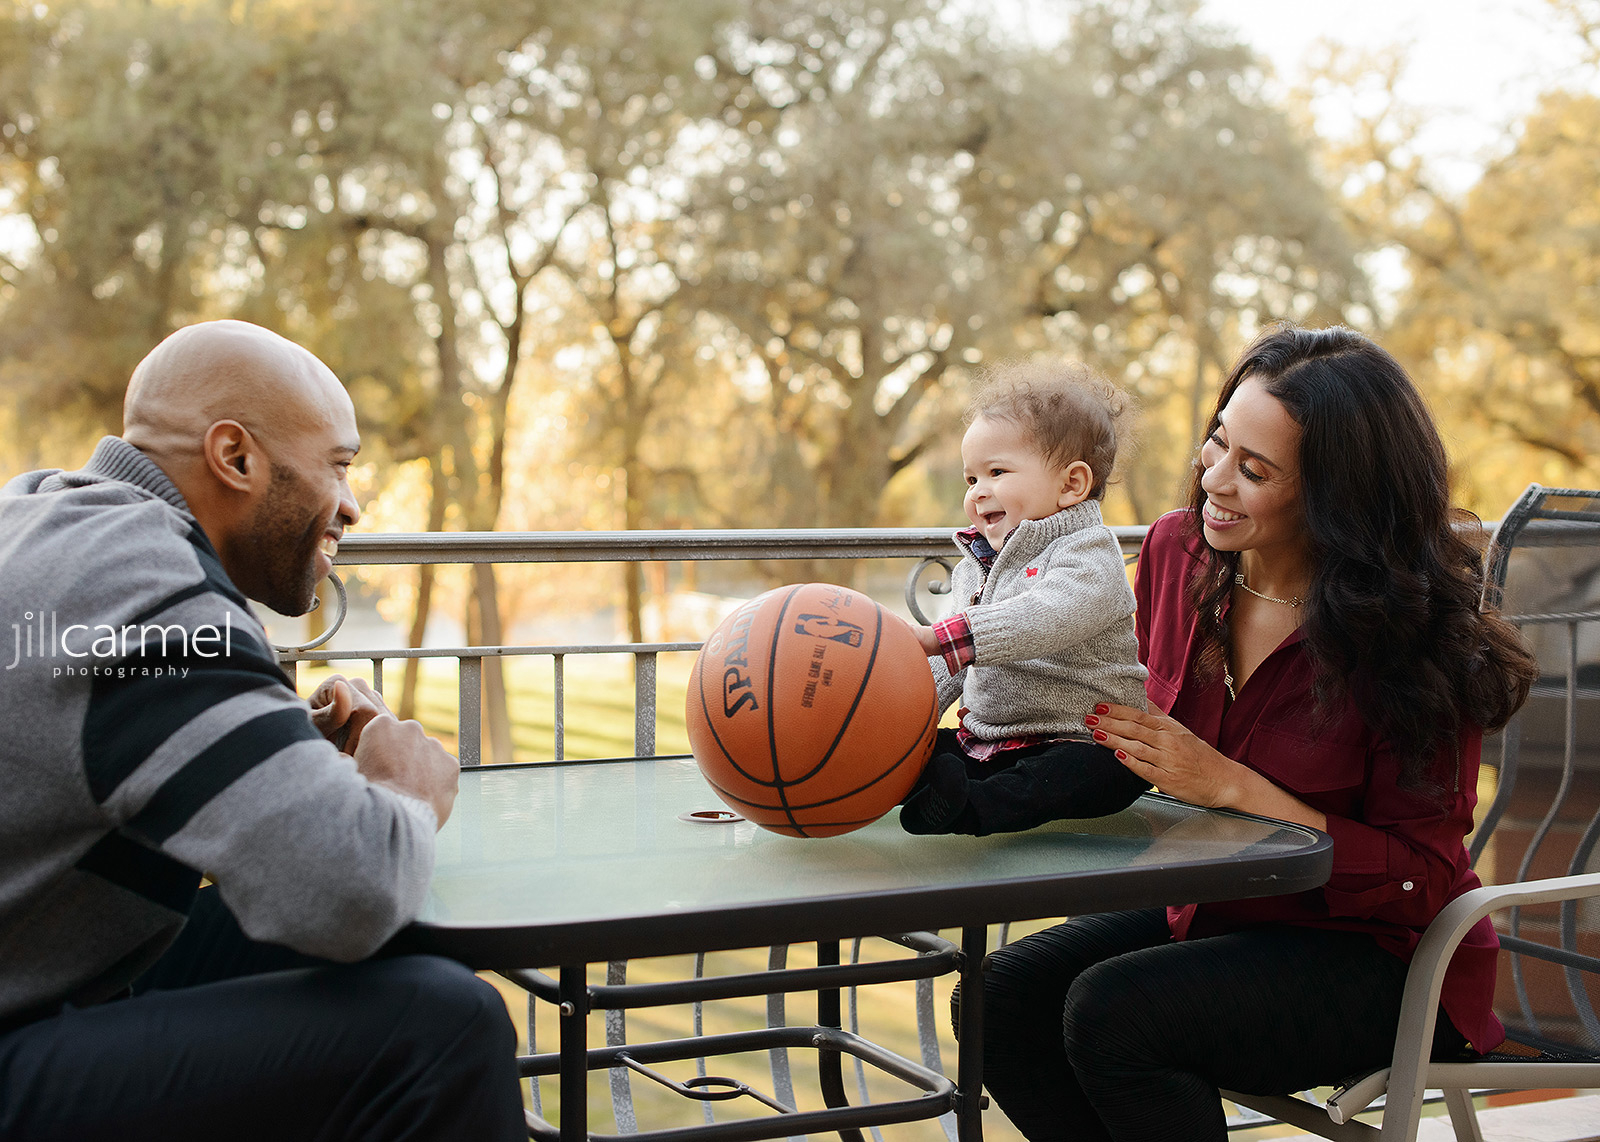 Vince and Sondi Carter with Baby Boy and a Basketball